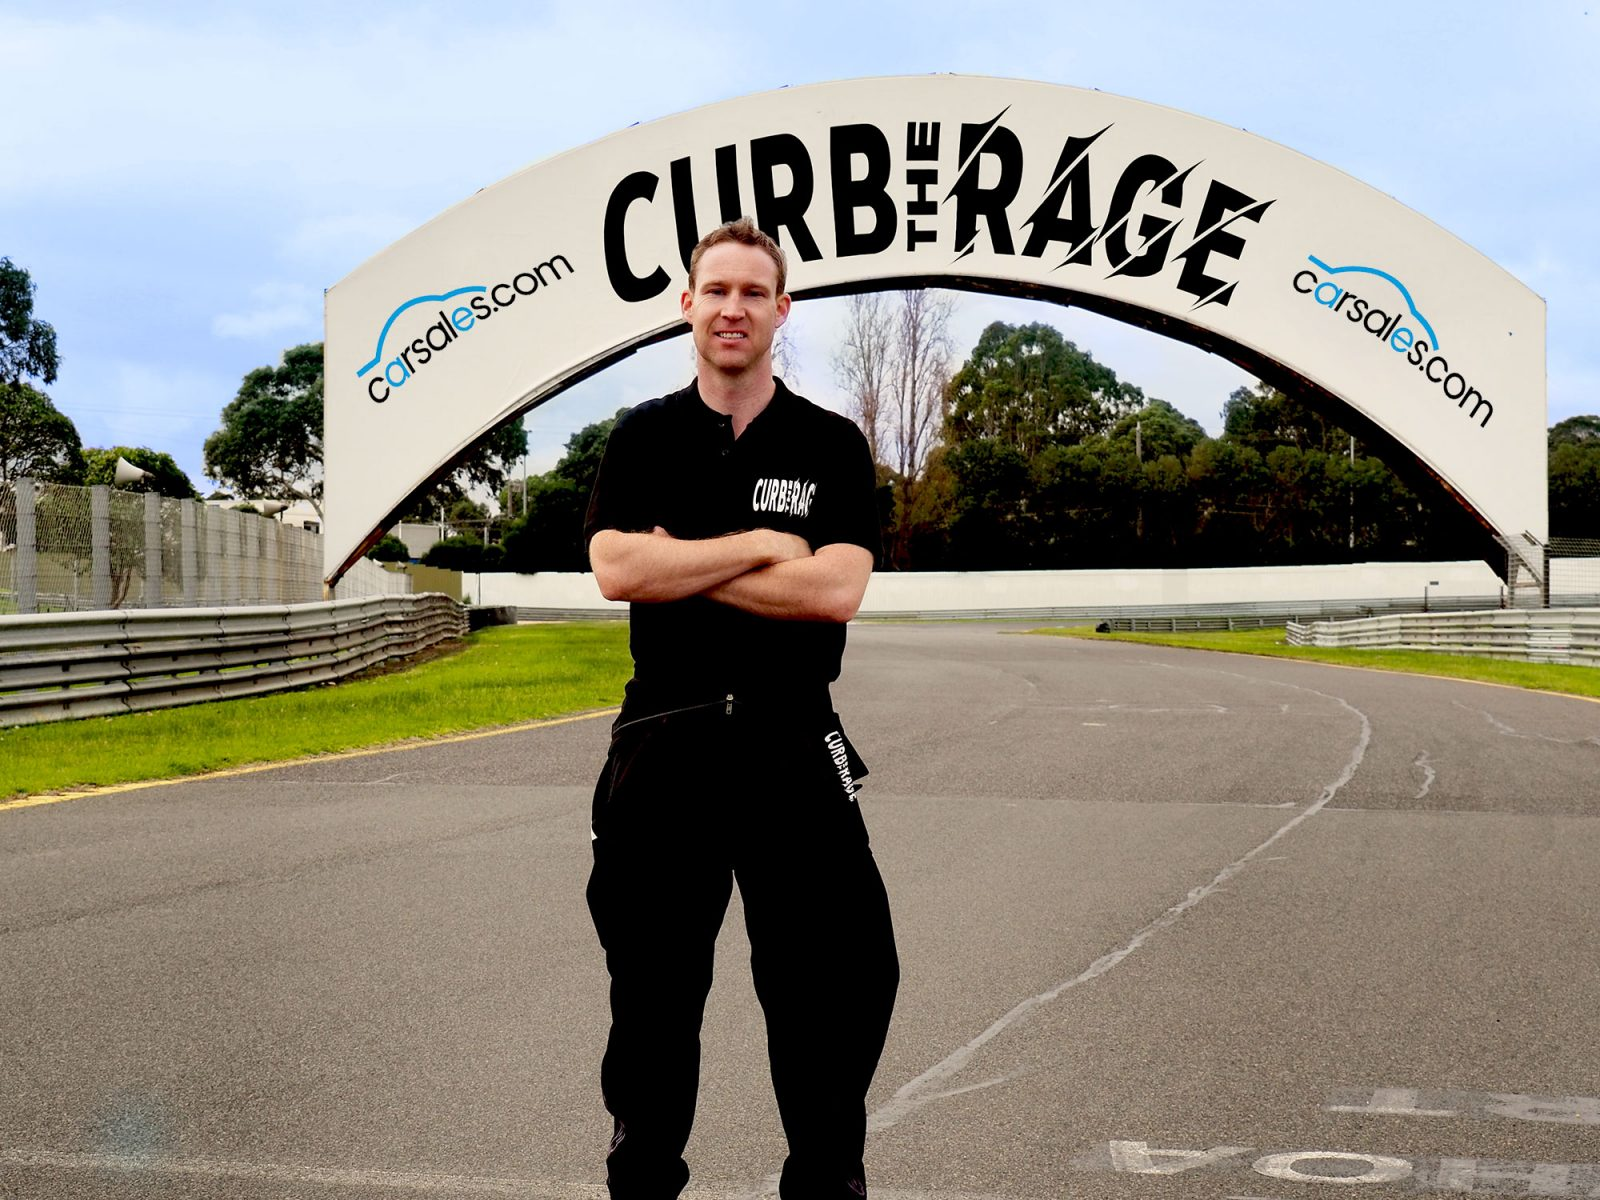 V8 Star to Curb the Rage